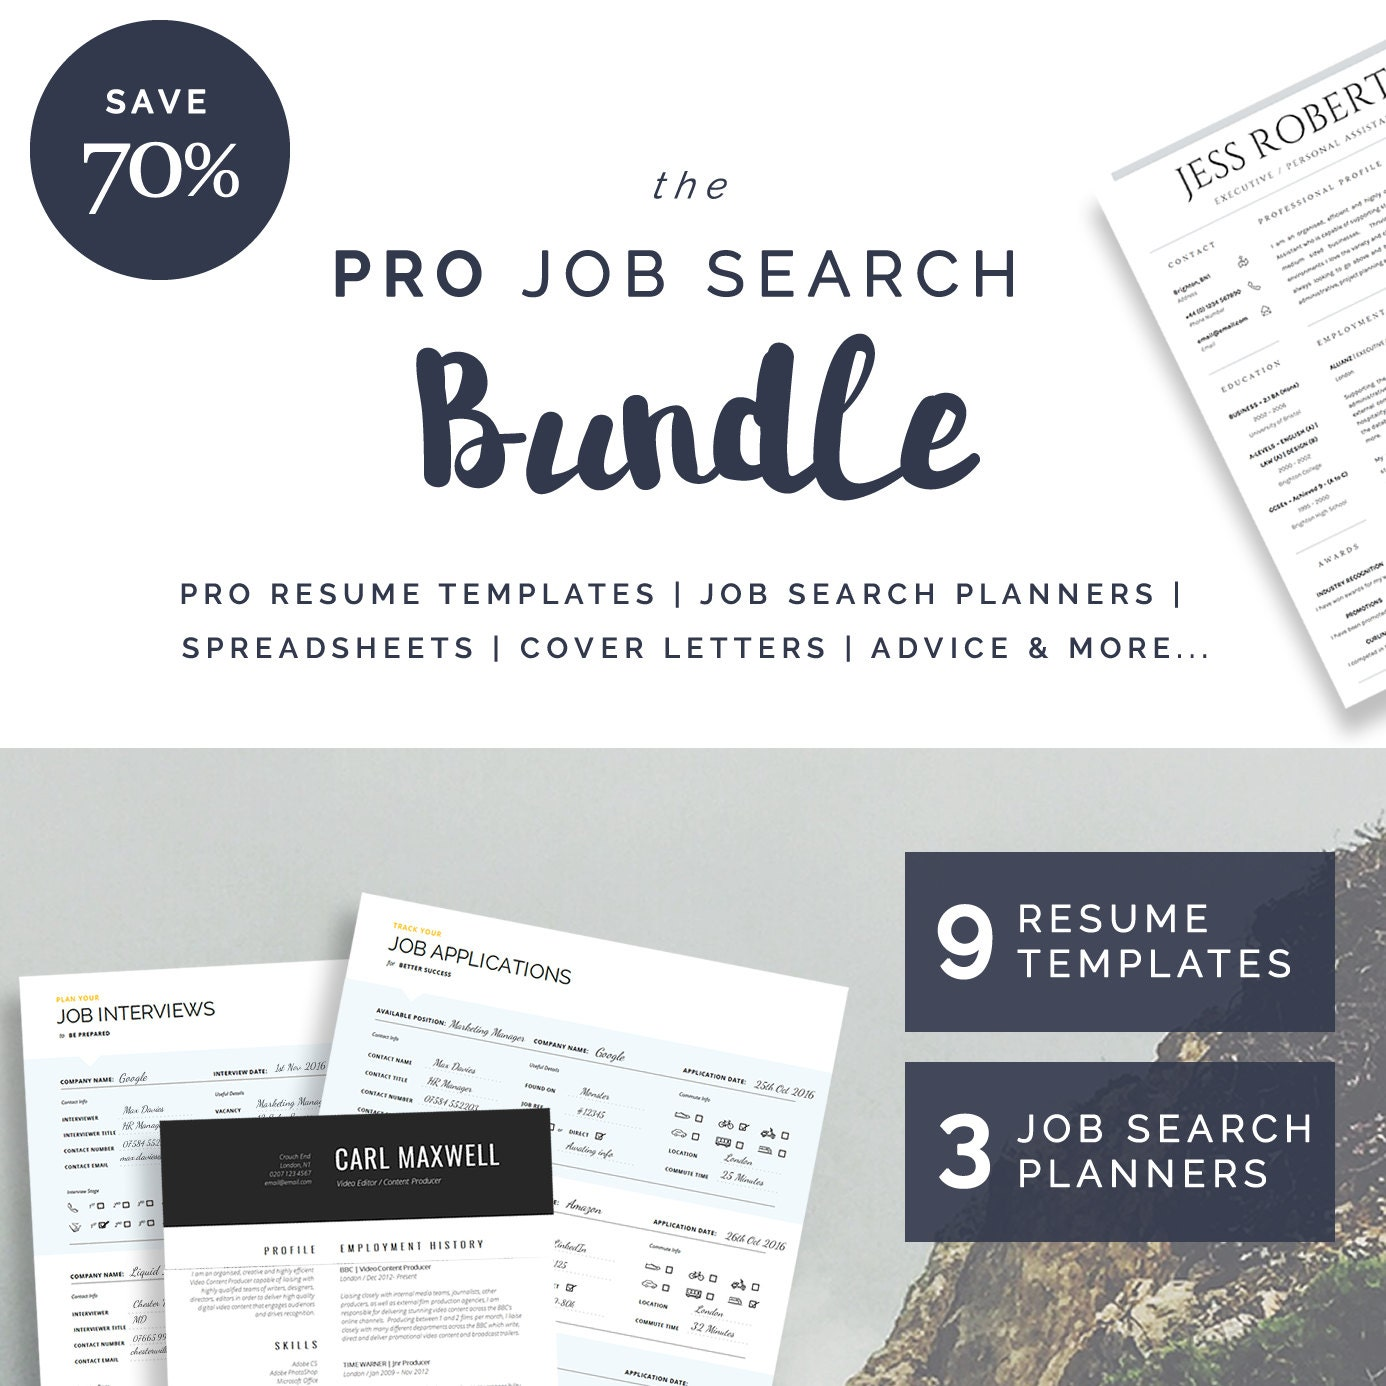 9 Resume / CV Templates 3 Job Search Planners Cover